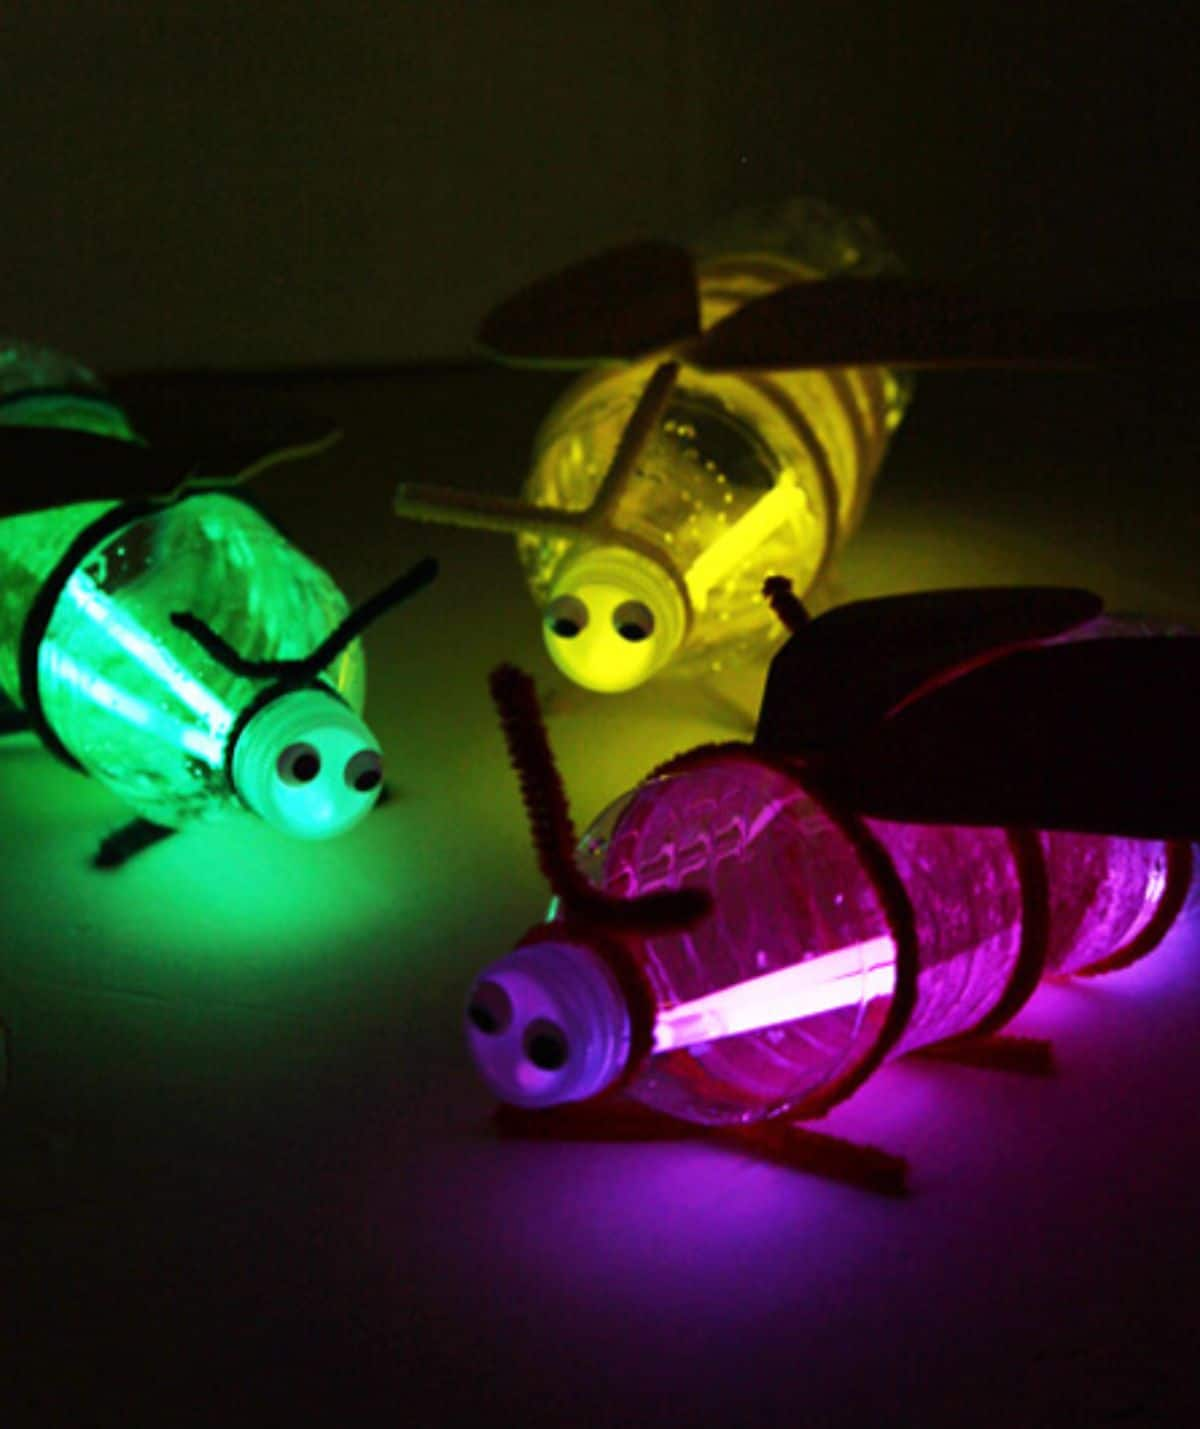 3 bottles are filled with purple, green and yello glowsticks are decorated to look like fireflies